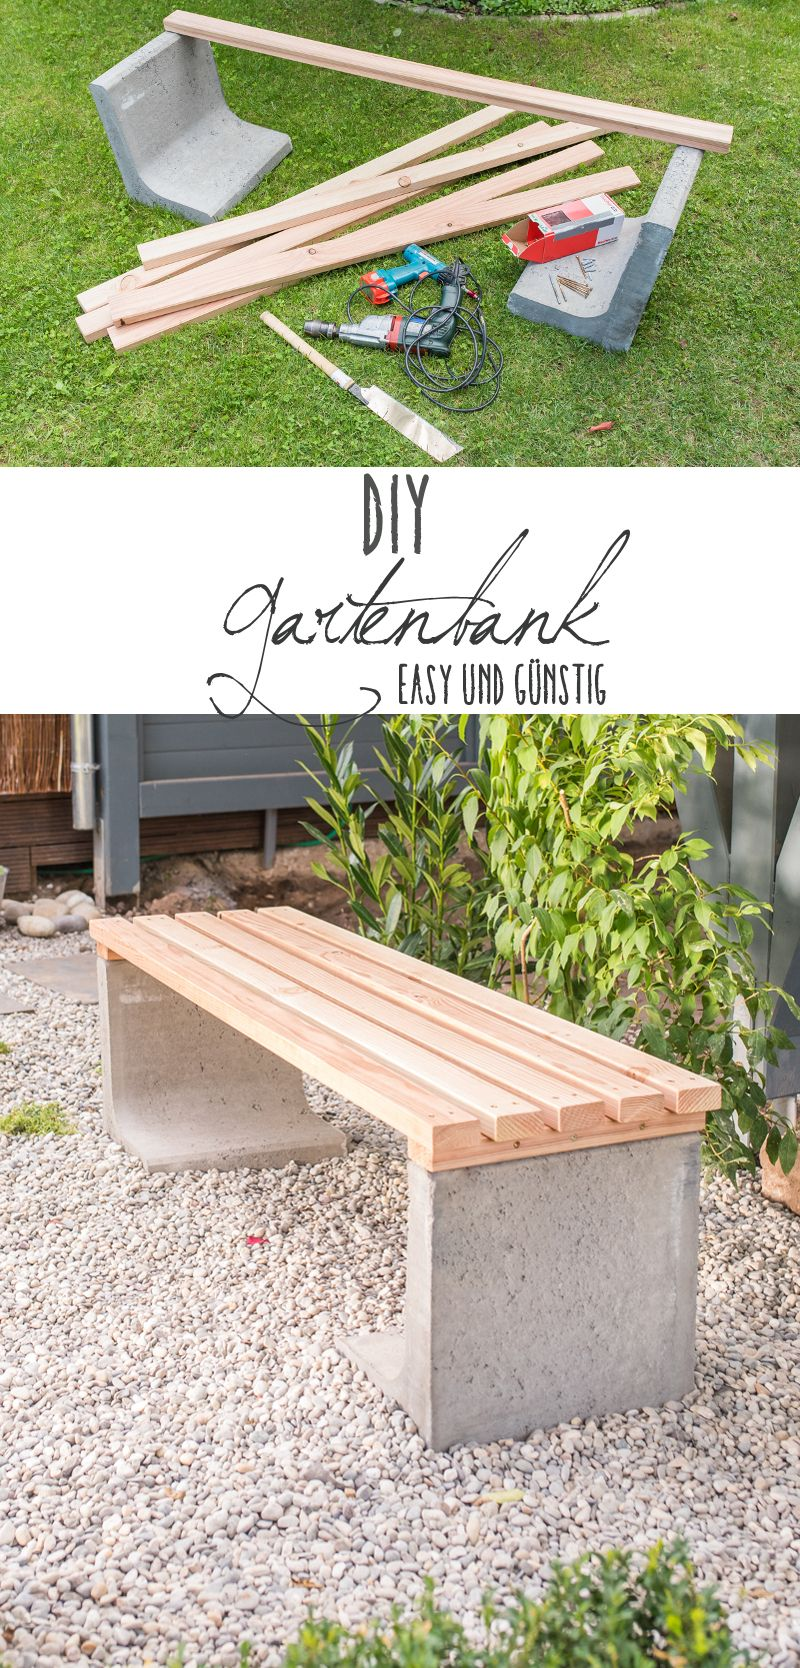 diy gartenbank mit beton und holz pinterest. Black Bedroom Furniture Sets. Home Design Ideas